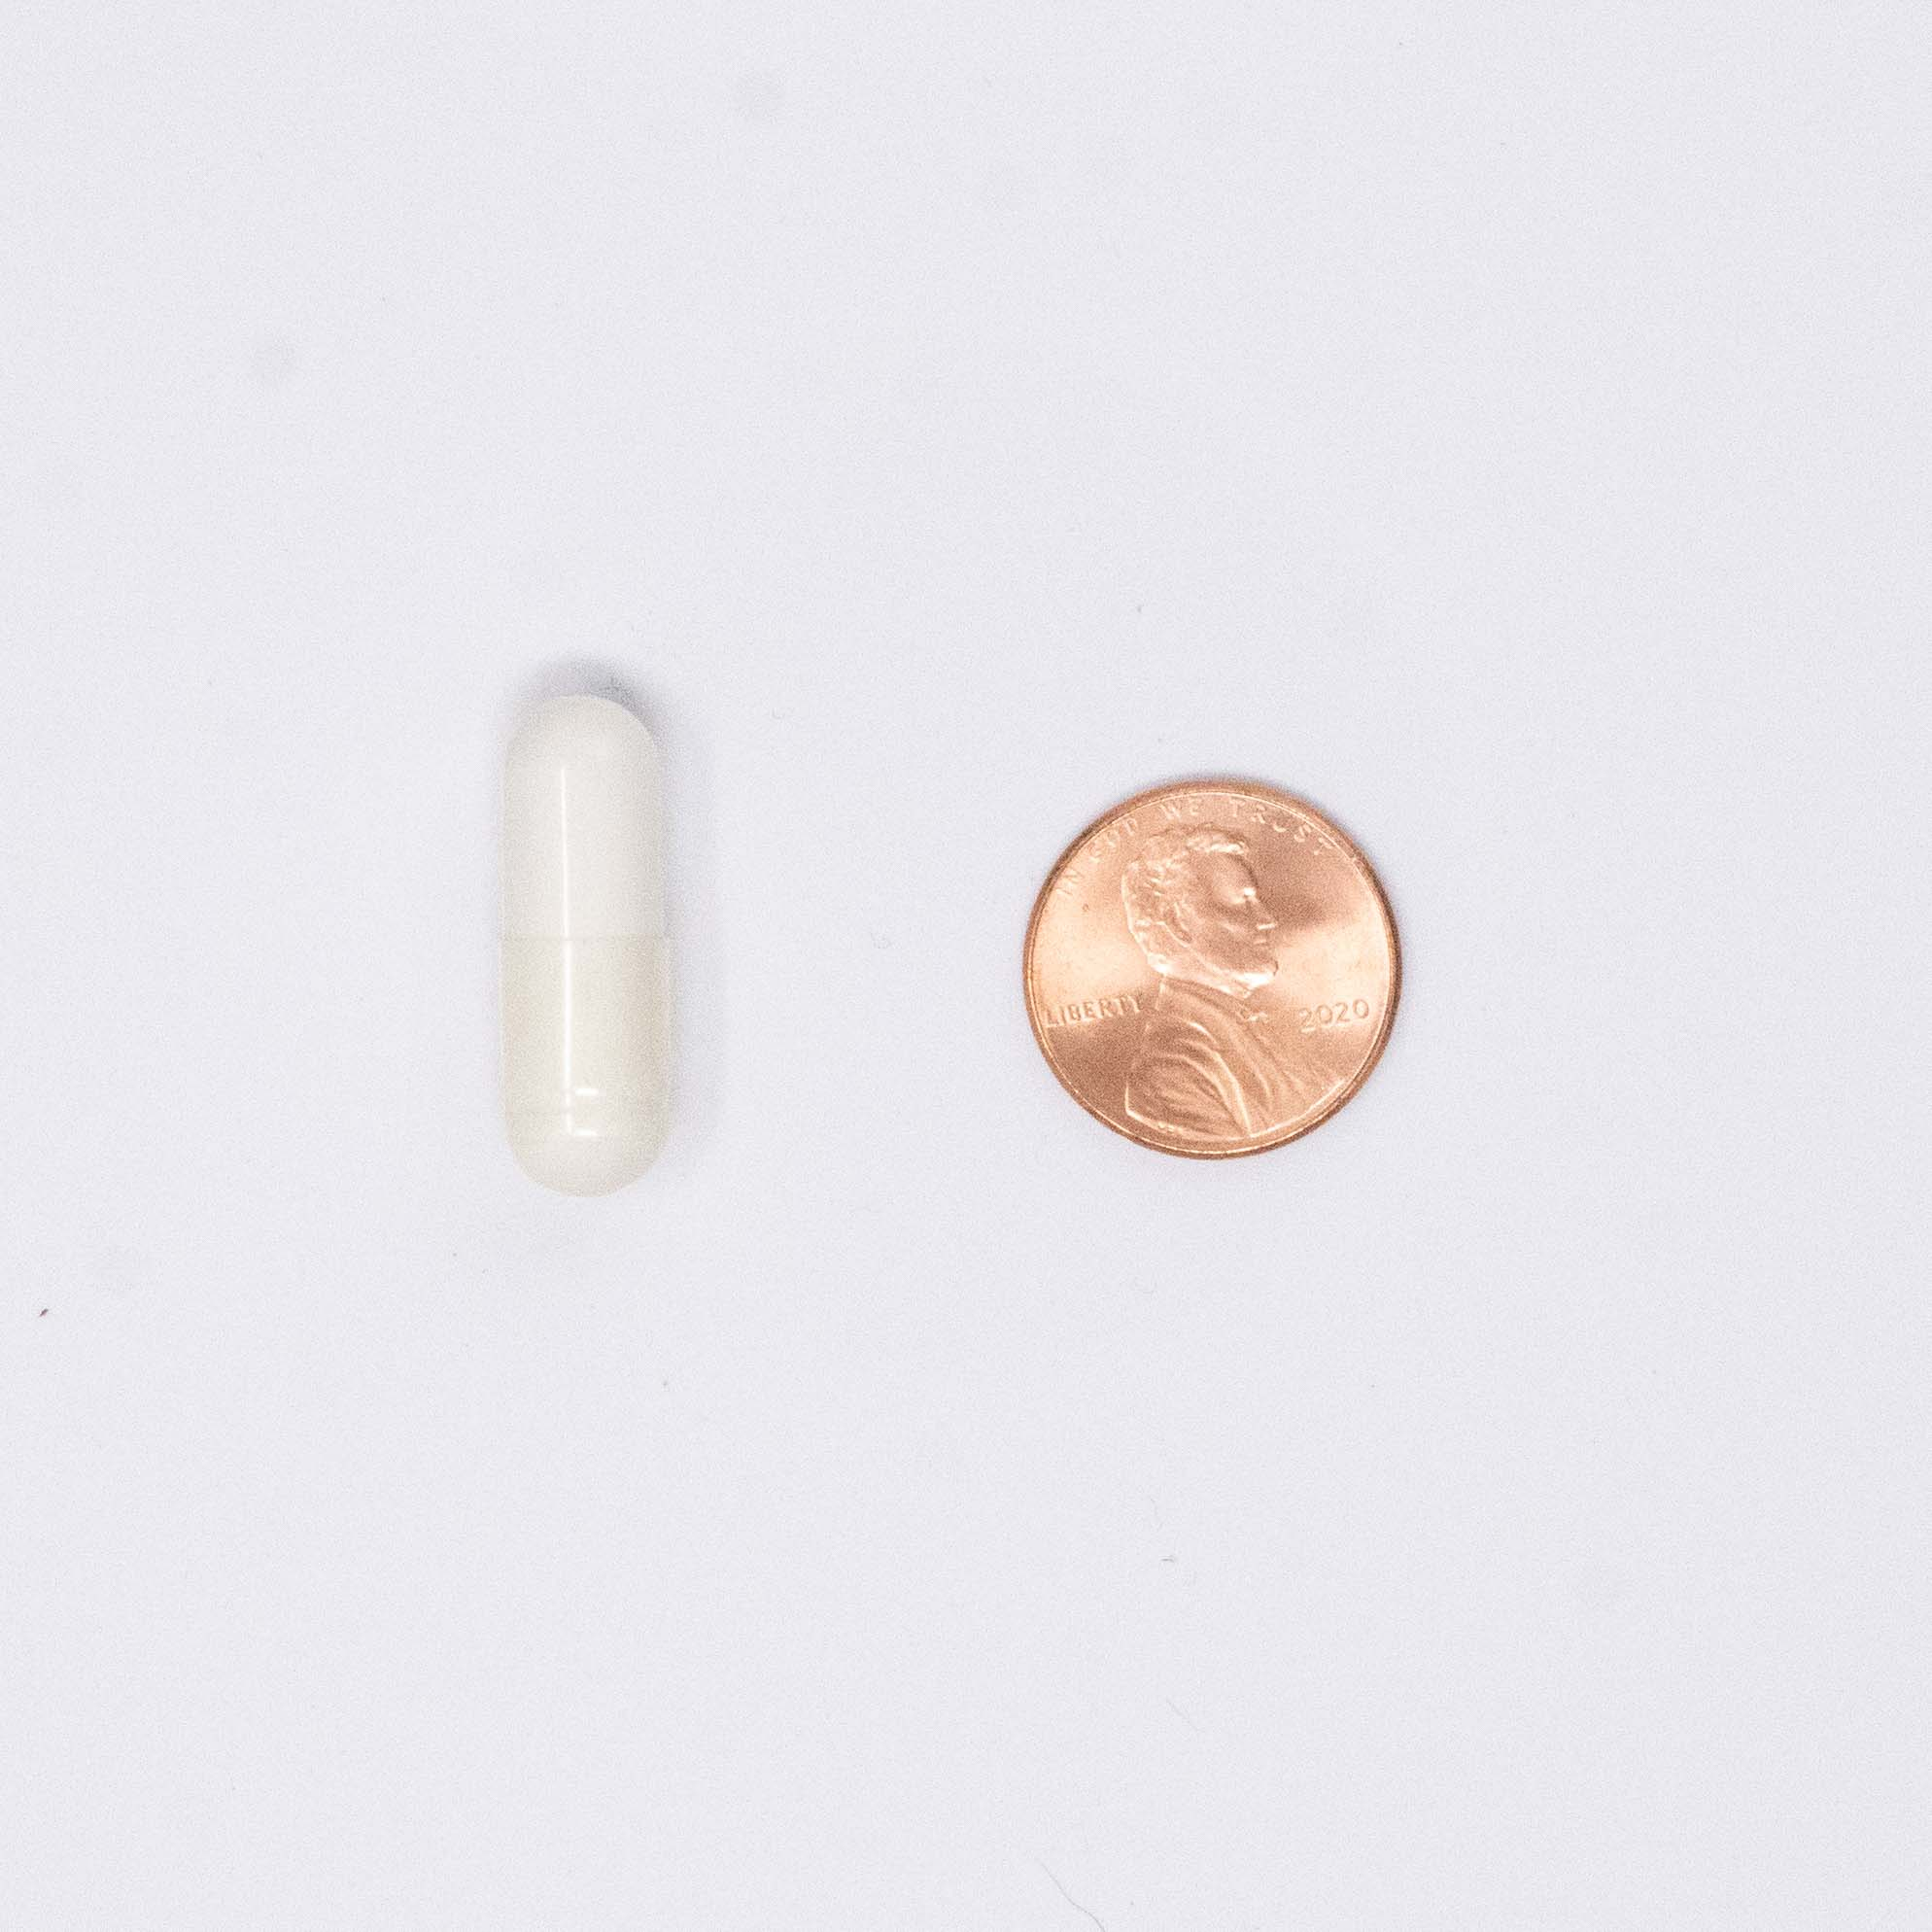 bone support vitamin next to a penny